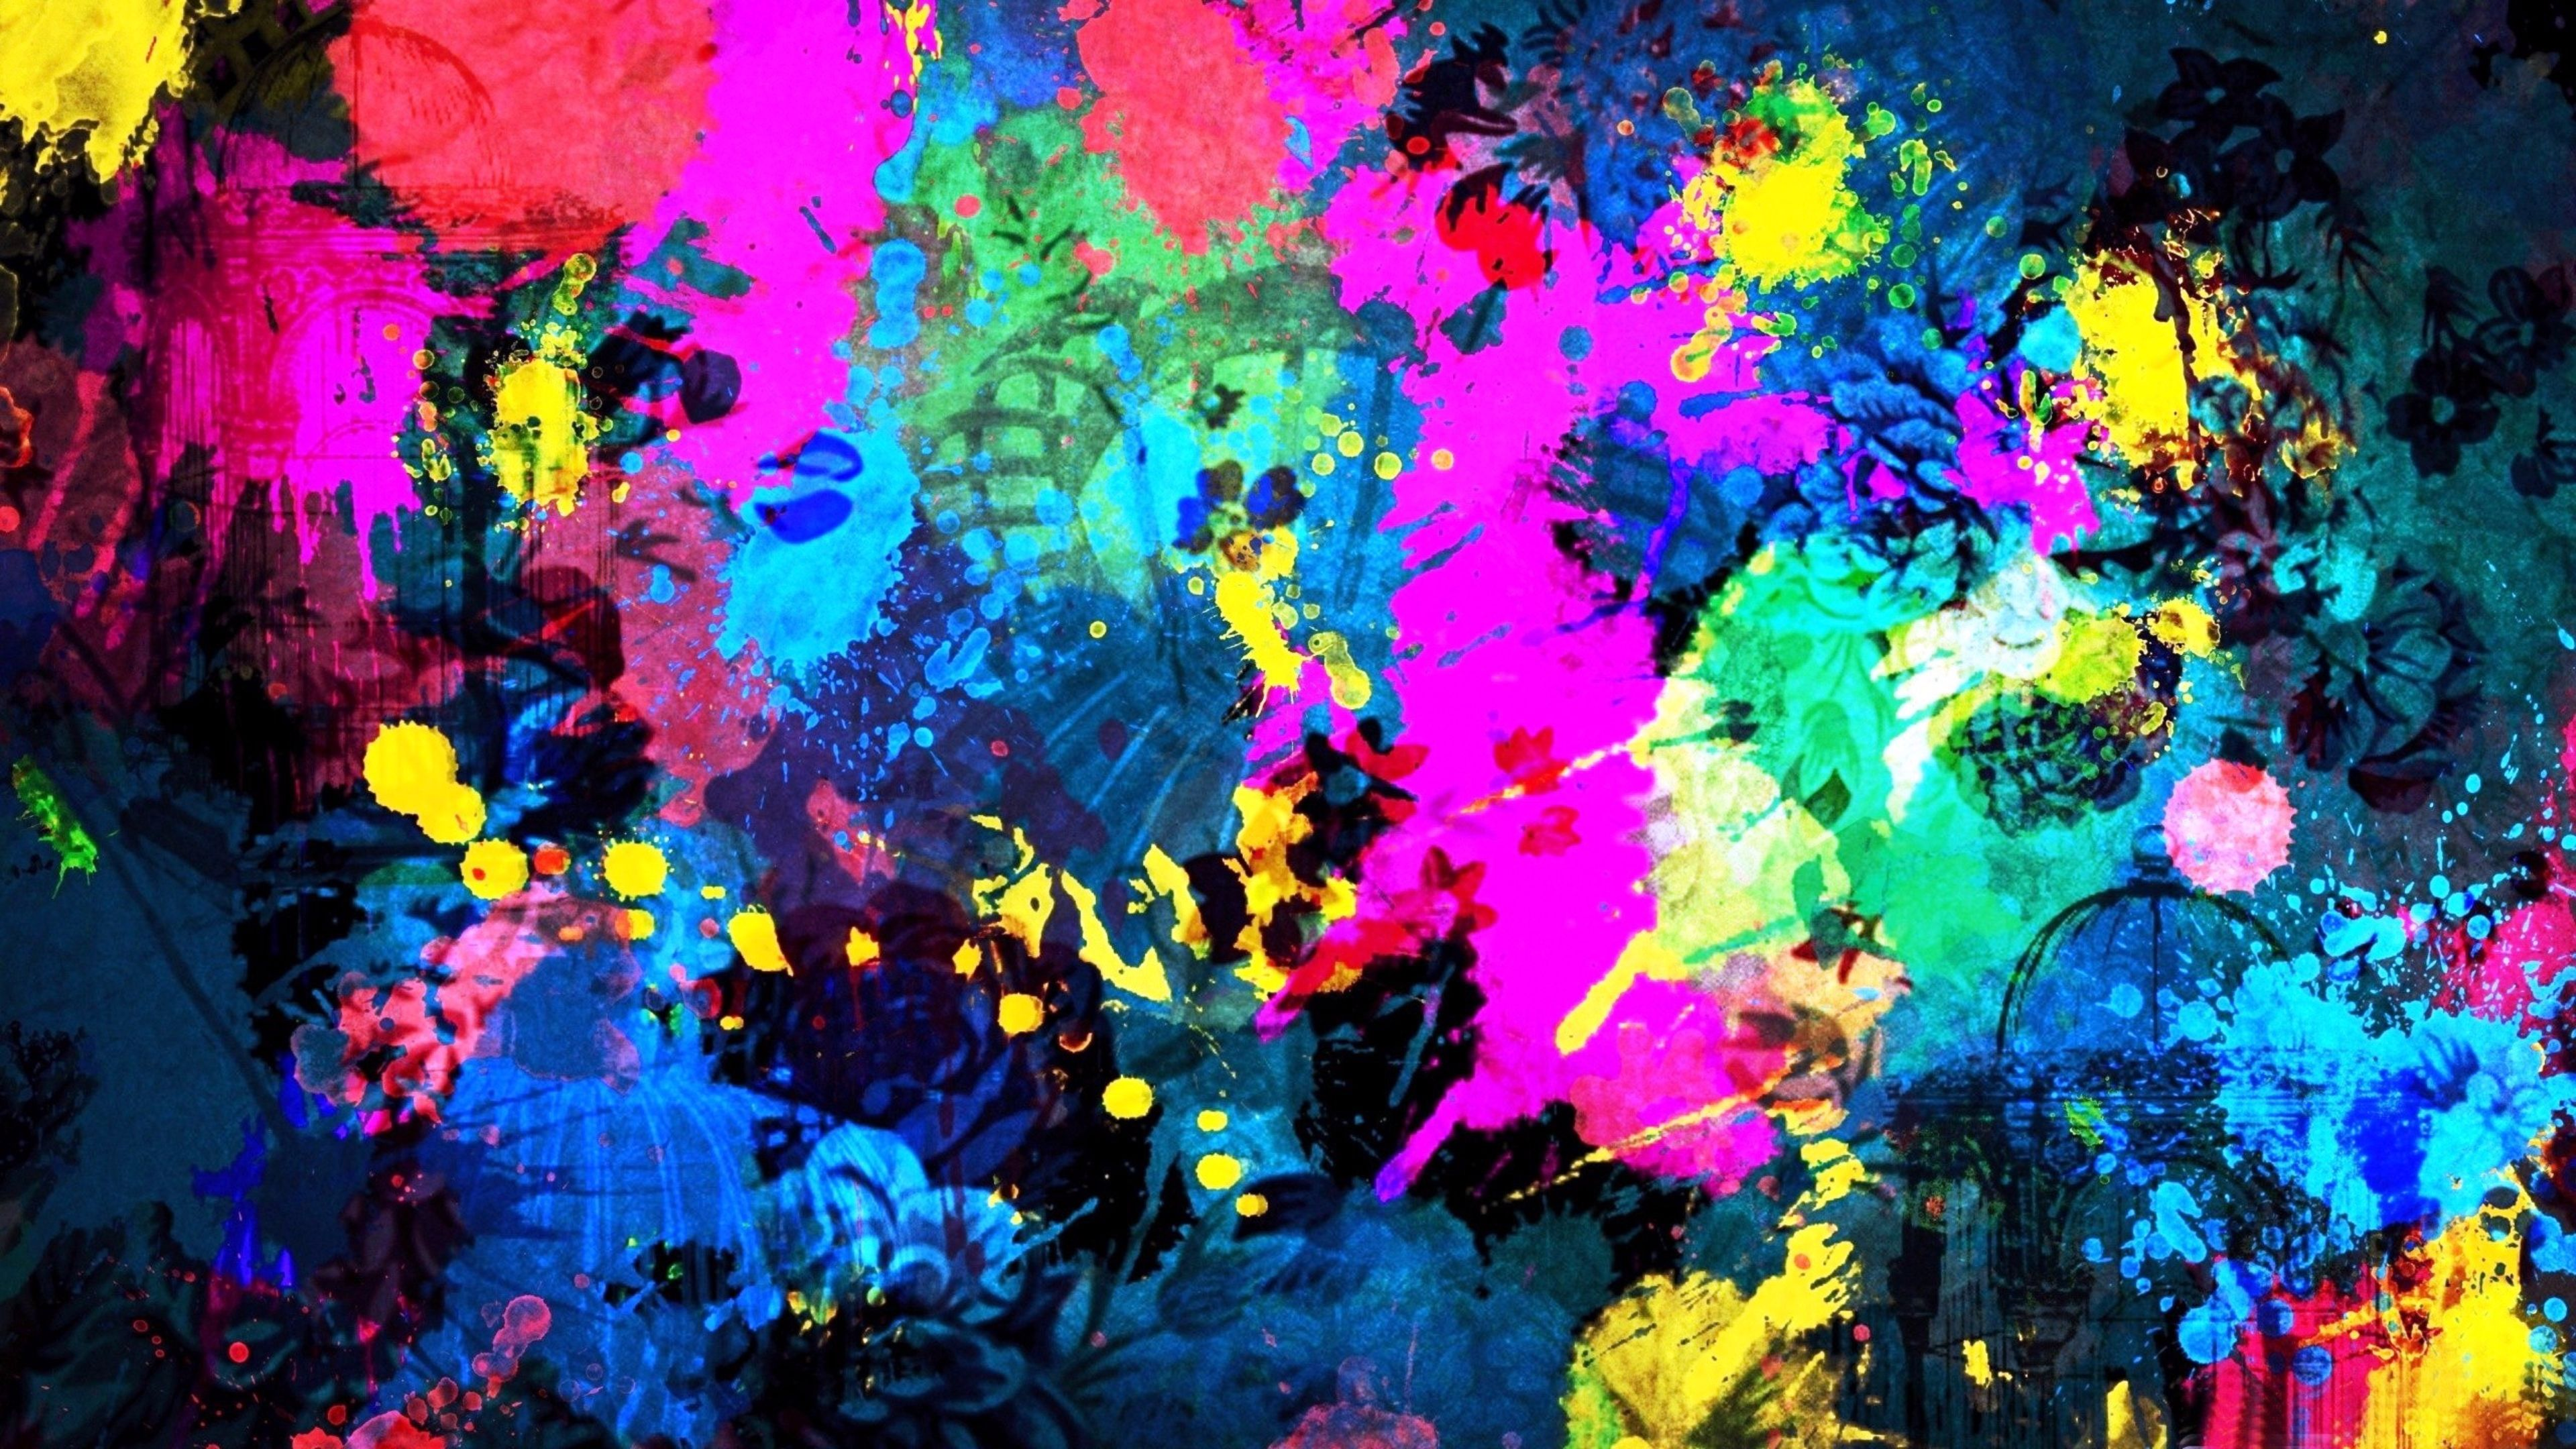 Color Art Abstract 4K Wallpaper 4K Wallpaper 3840x2160